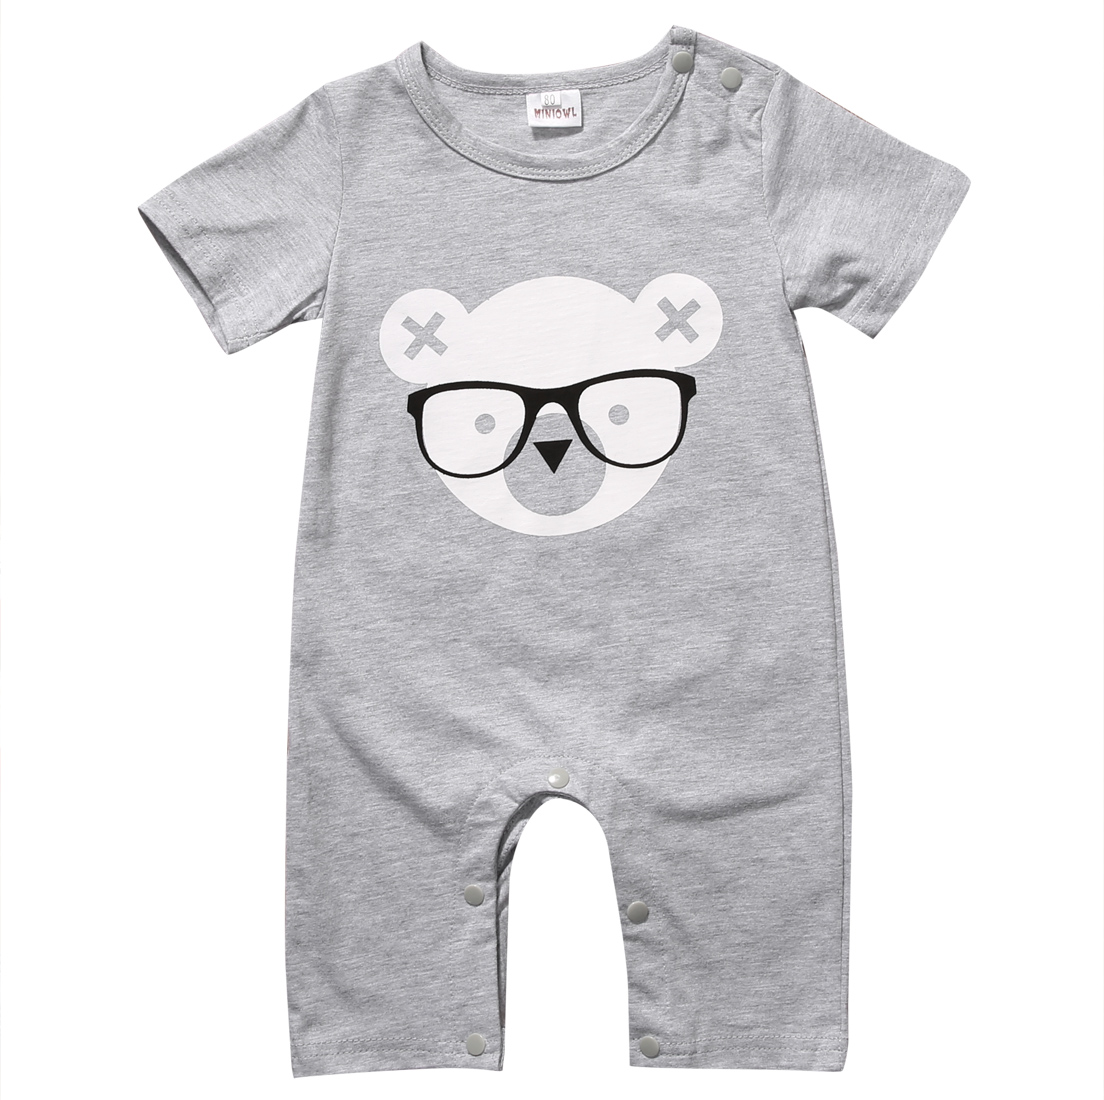 pudcoco Summer Cotton Jumpsuit Toddler Kids Outfits Newborn